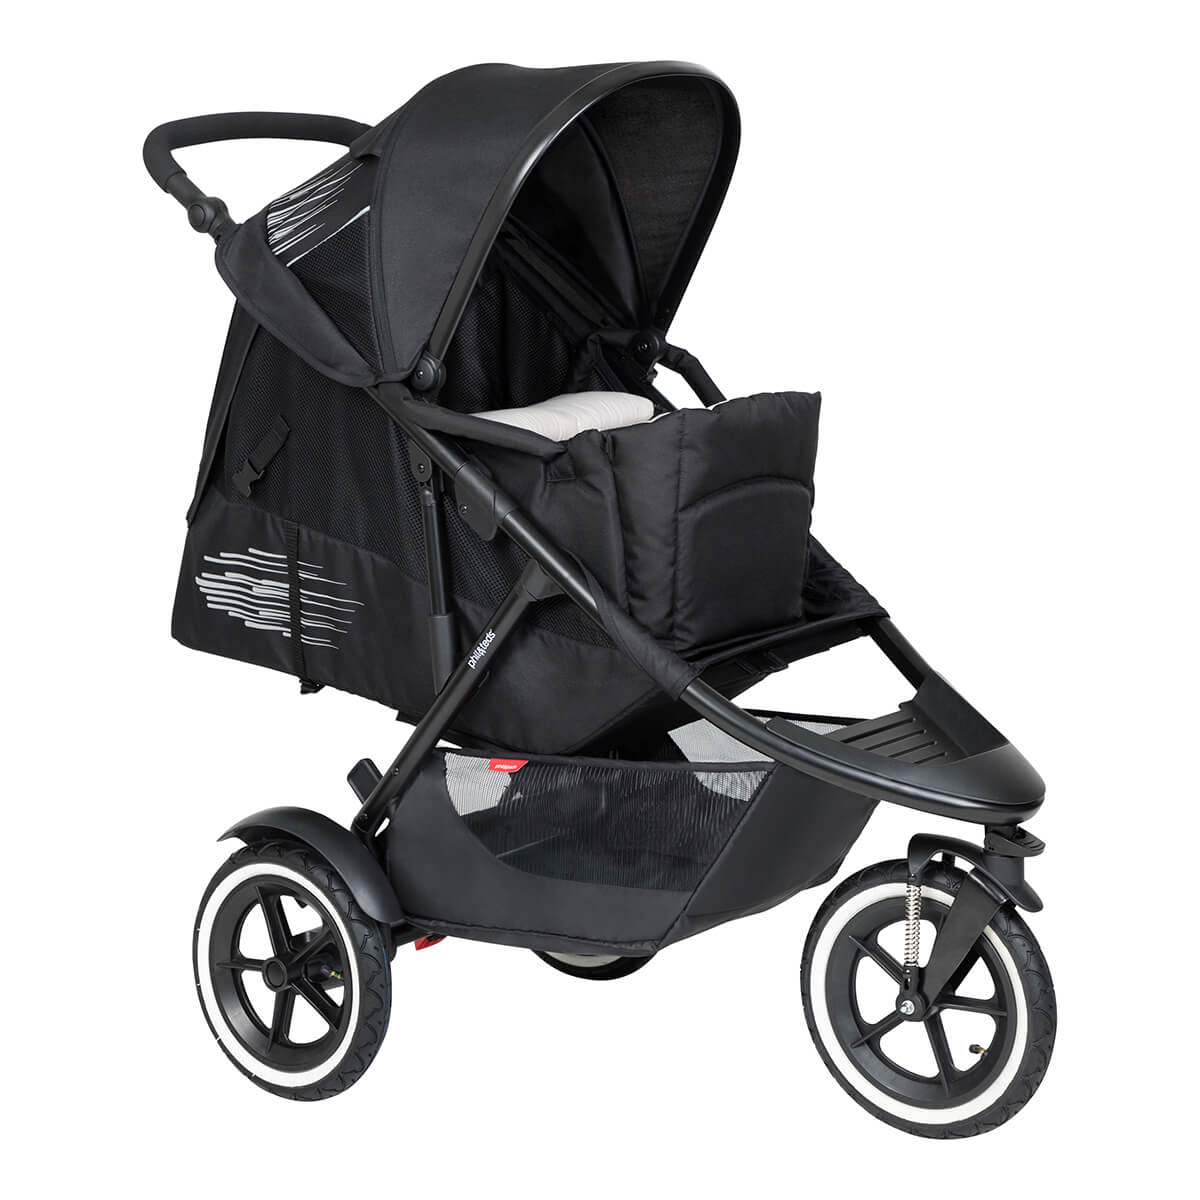 https://cdn.accentuate.io/4390323060832/19440099360952/philteds-sport-buggy-with-cocoon-full-recline-v1626488622996.jpg?1200x1200